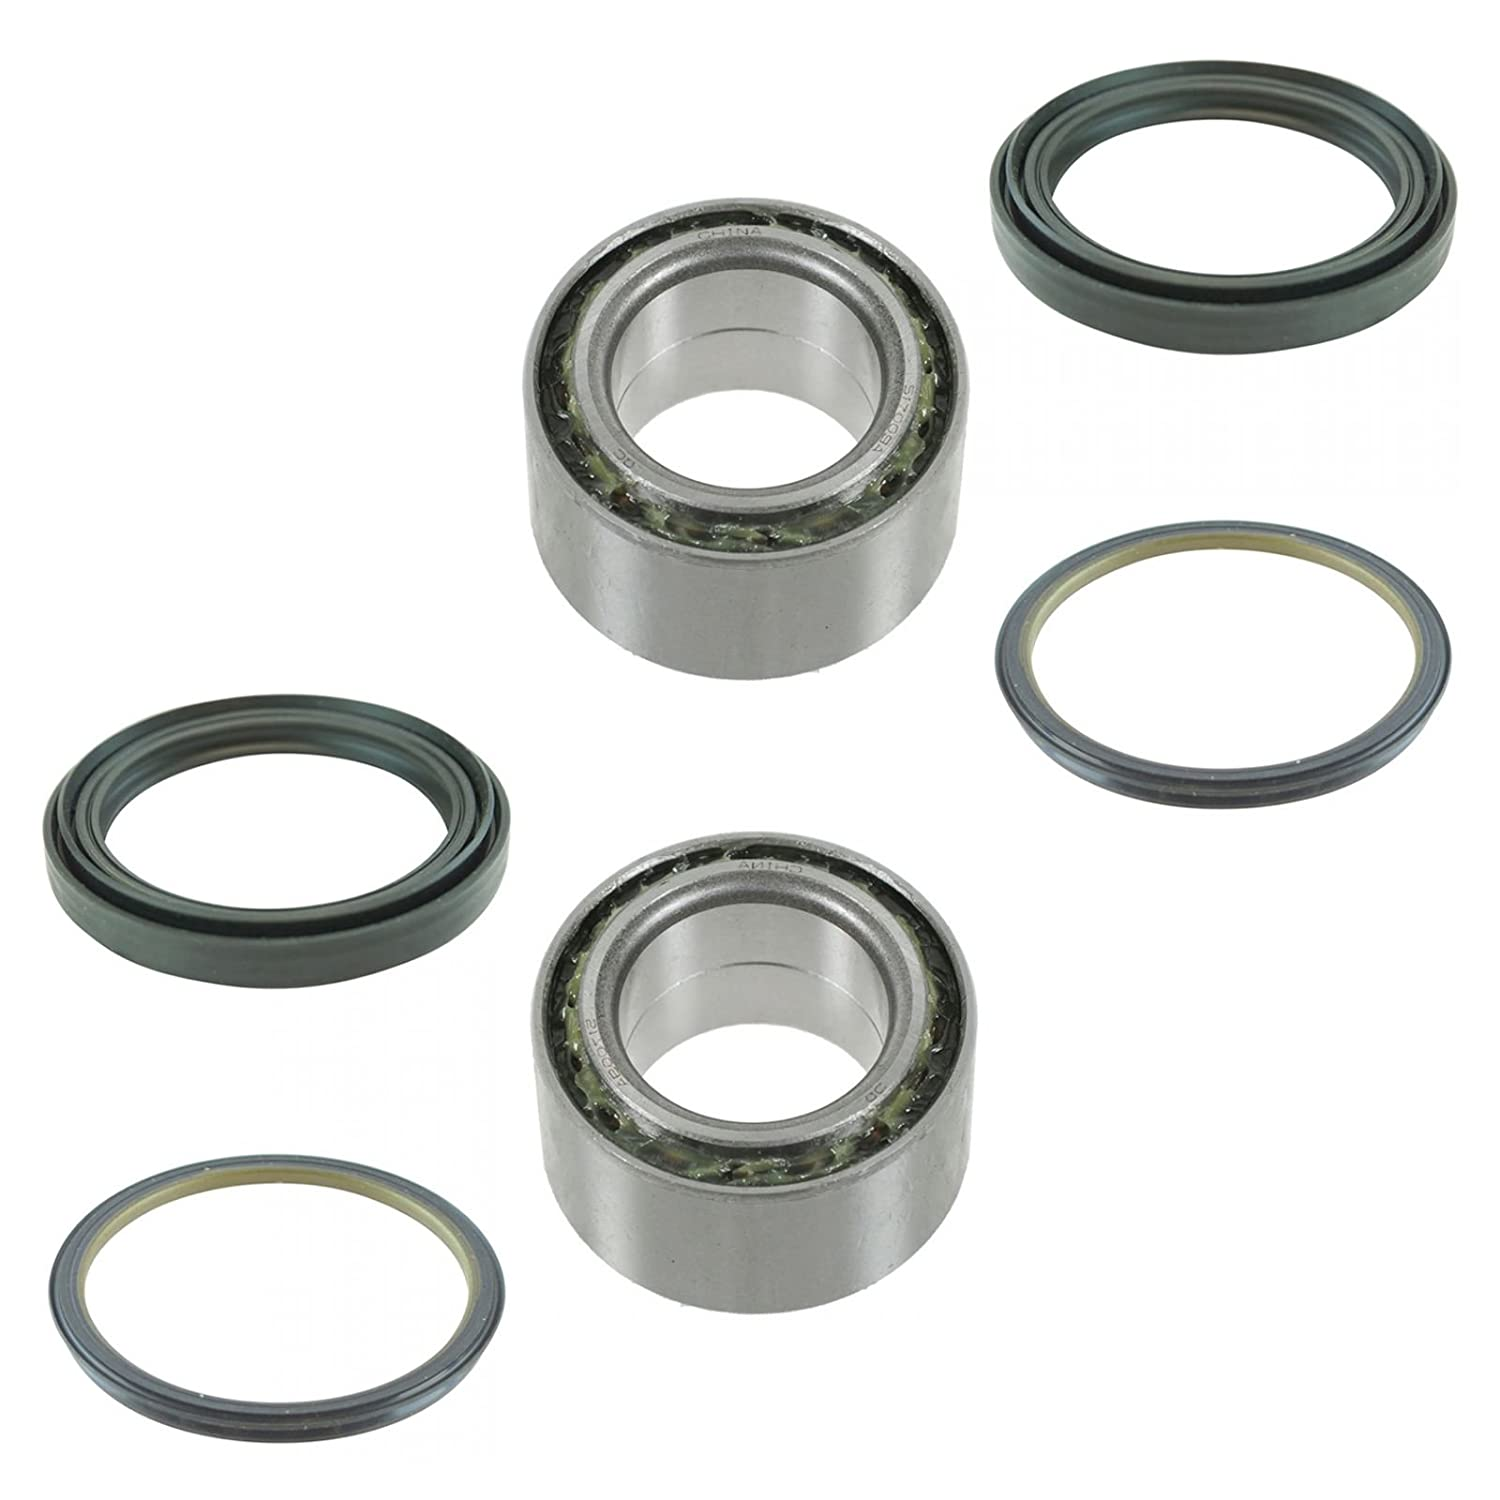 Wheel Hub Bearing Front Inner & Seal Driver & Passenger Side Kit for Tracker AM Autoparts